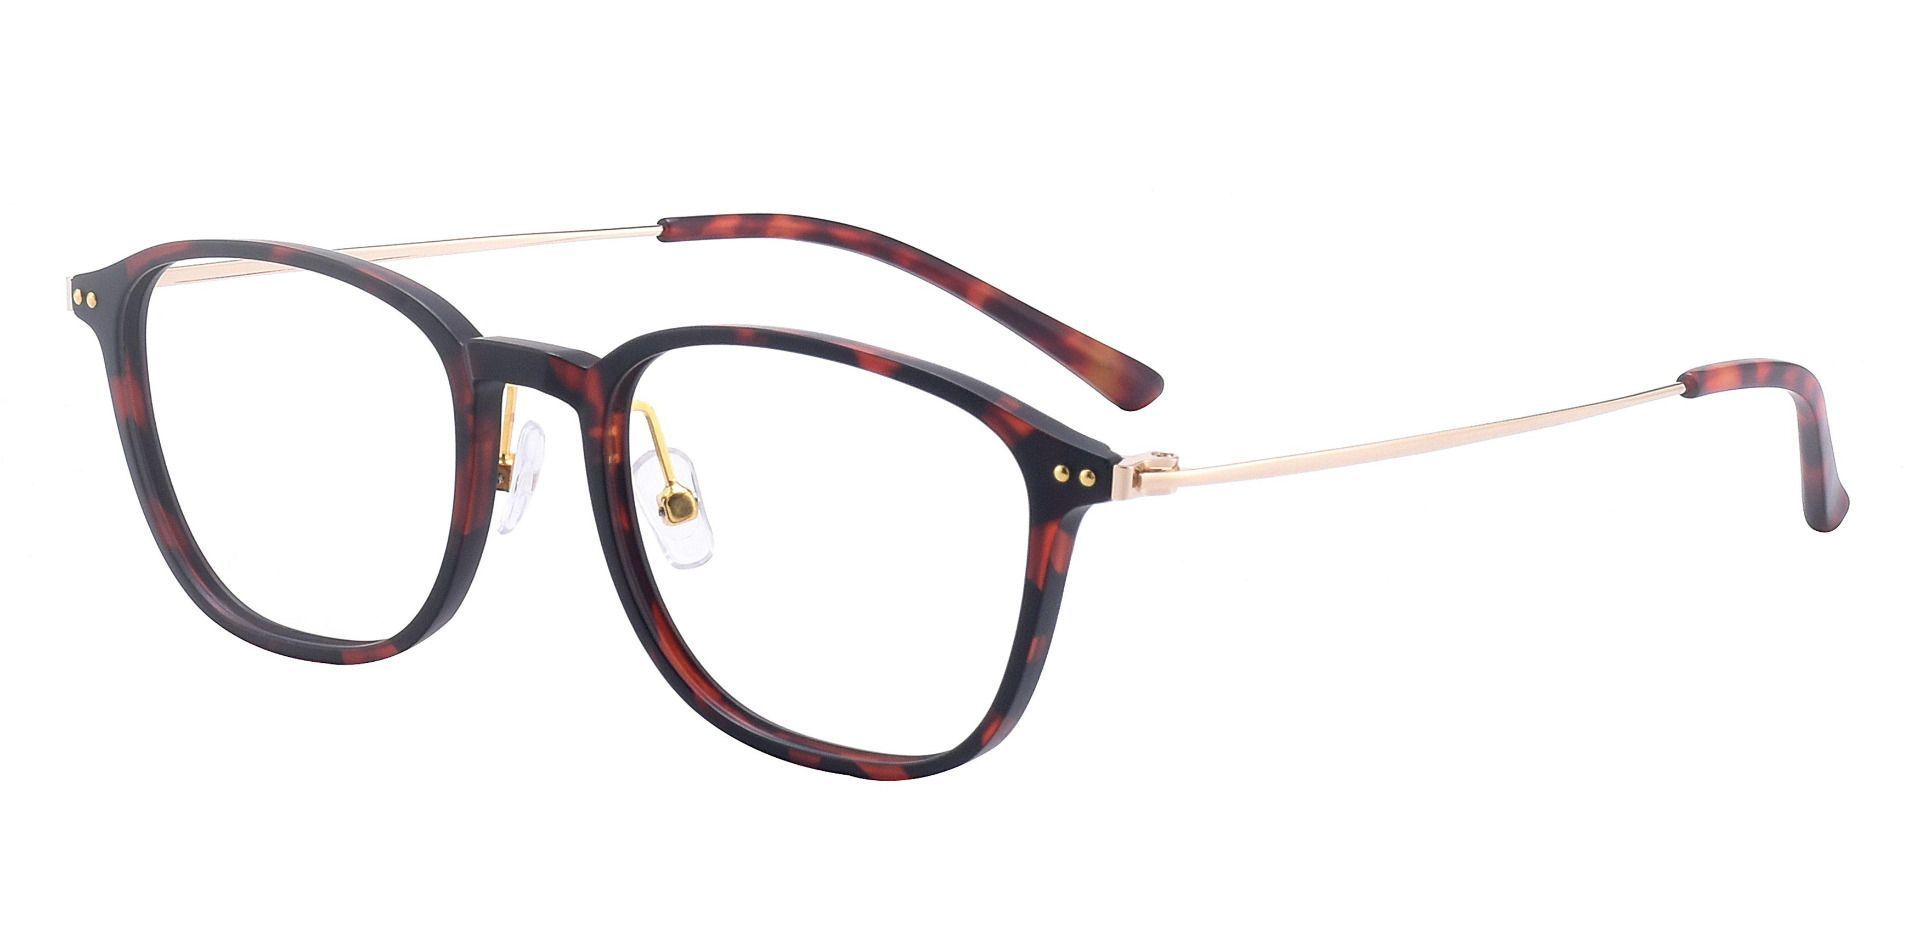 London Oval Prescription Glasses - Brown